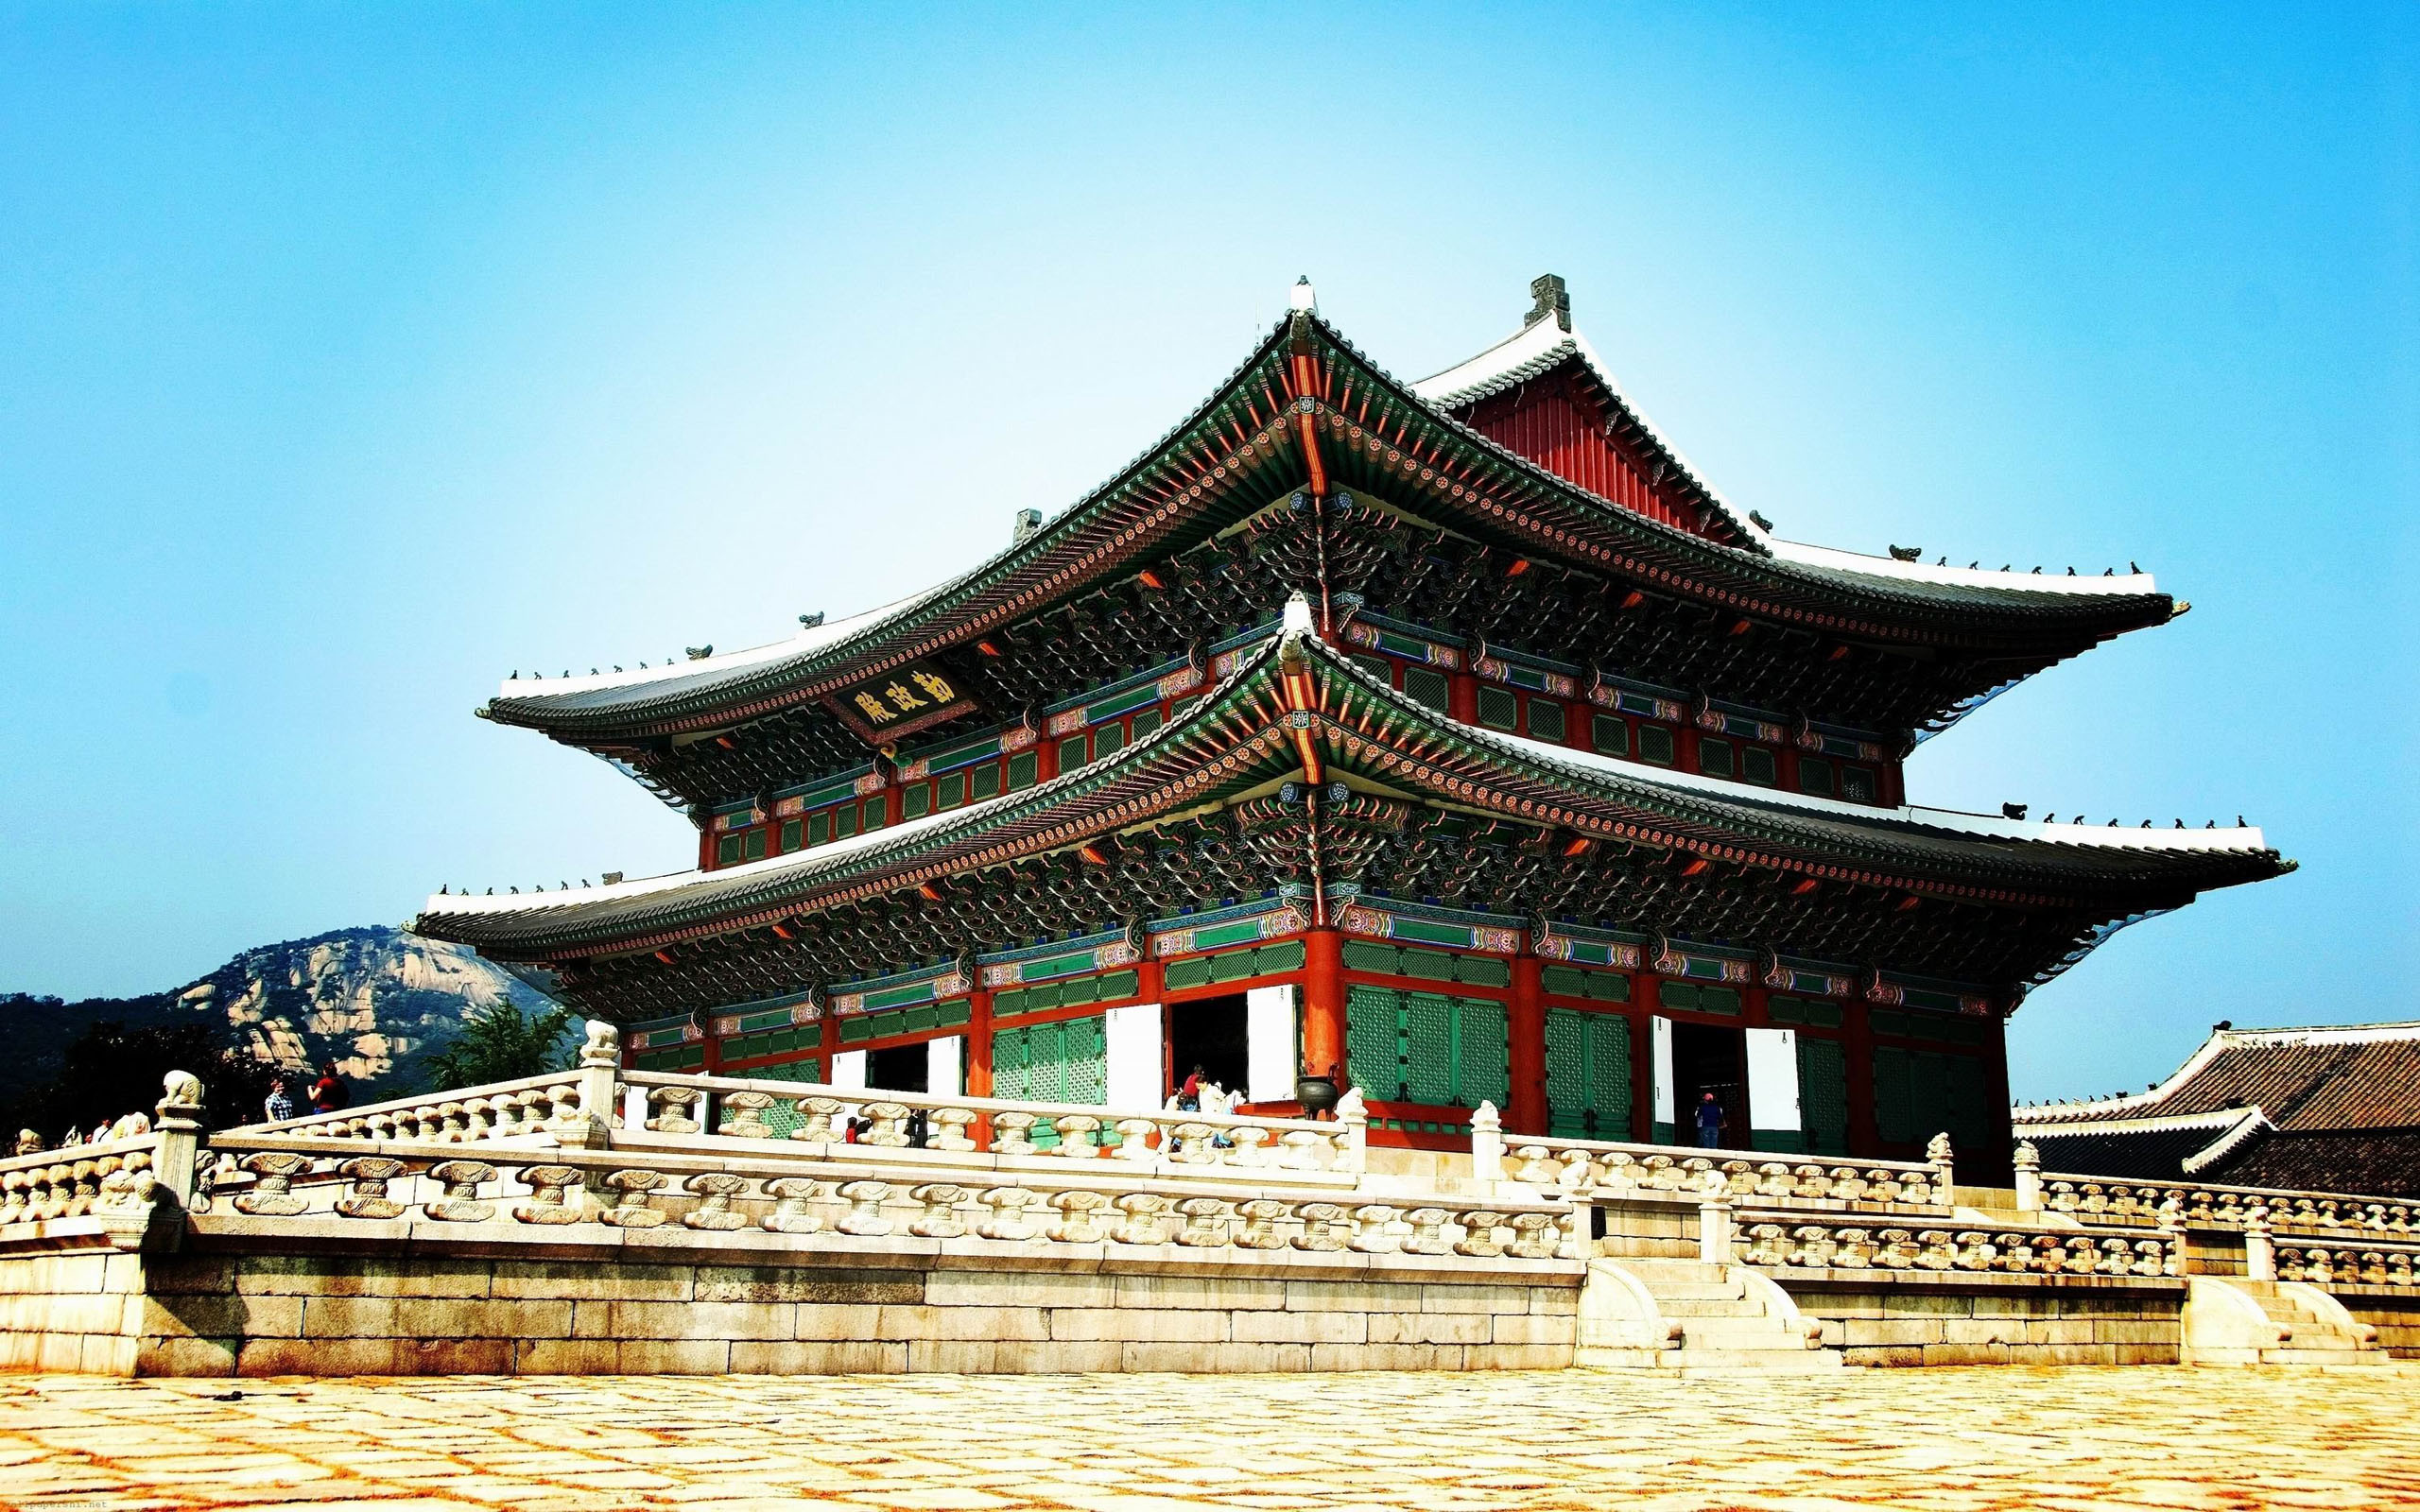 2560x1600 South, Korea, Temple, Seoul, Widescreen, Hd, Wallpaper, Background,  Pictures, Free, Download, Hd Images, Cool Images, Widescreen, 2560×1600  Wallpaper HD